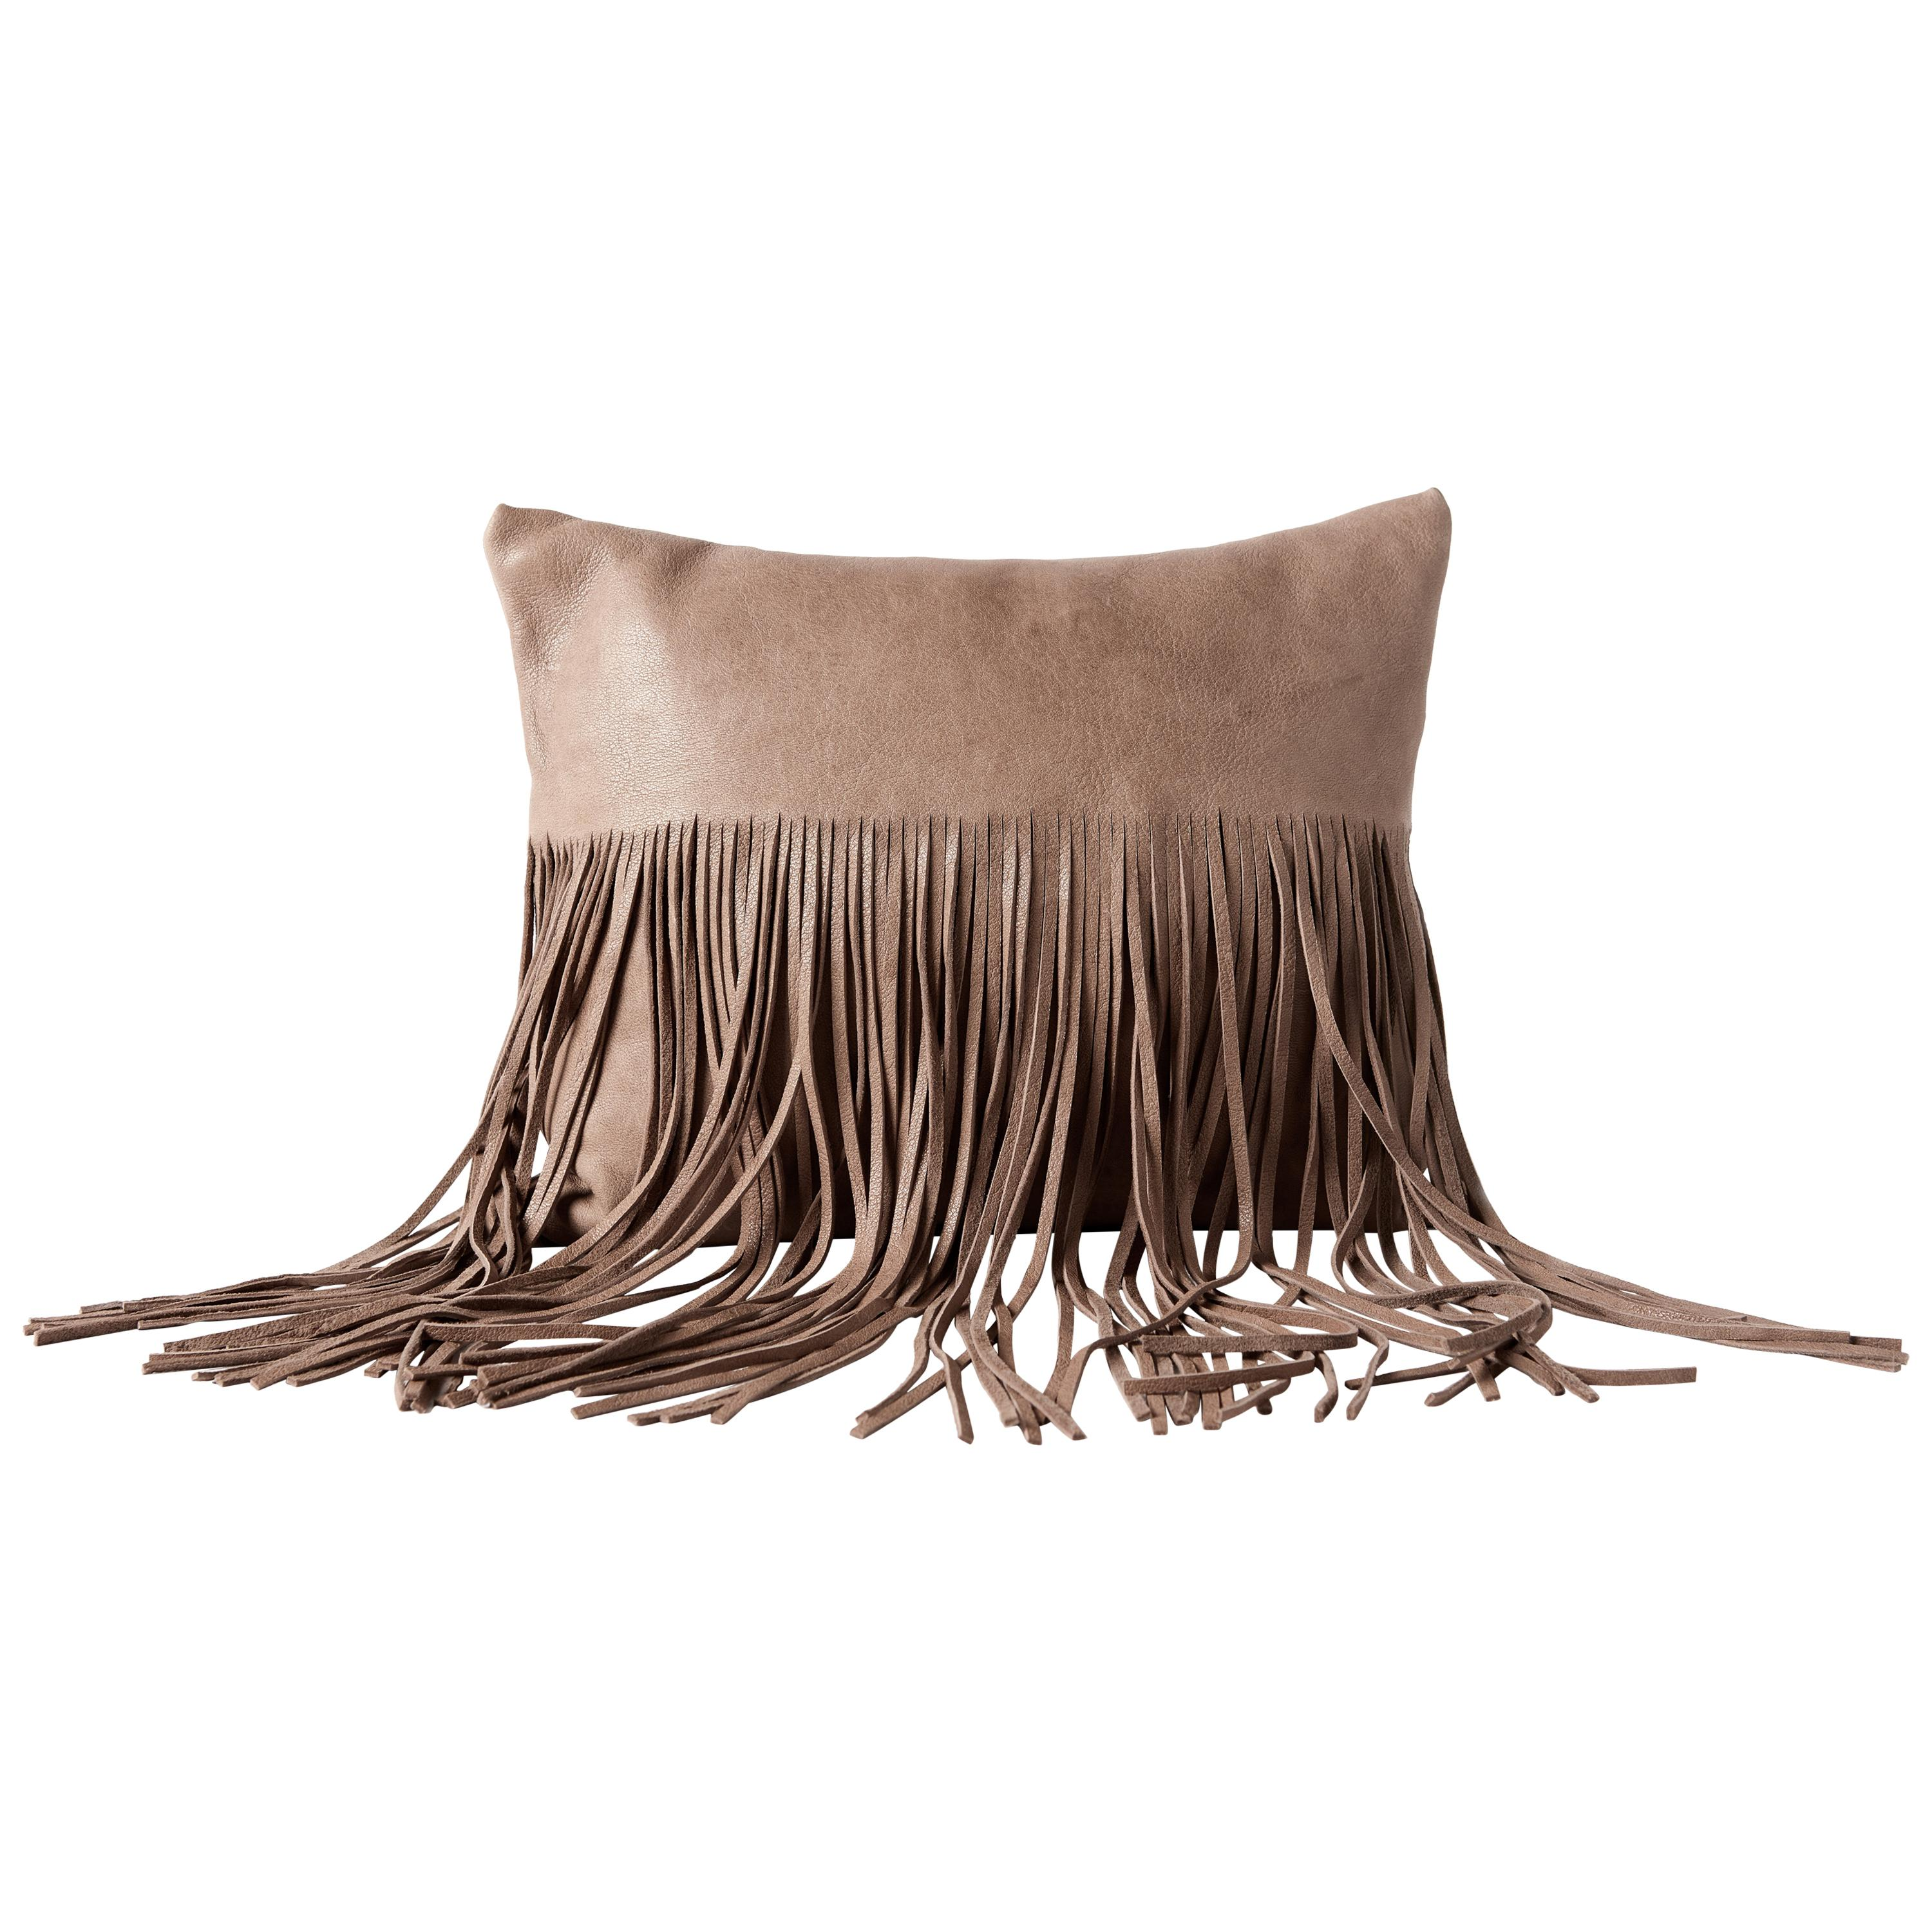 Small Fringe Pillow in Latte Leather by Moses Nadel